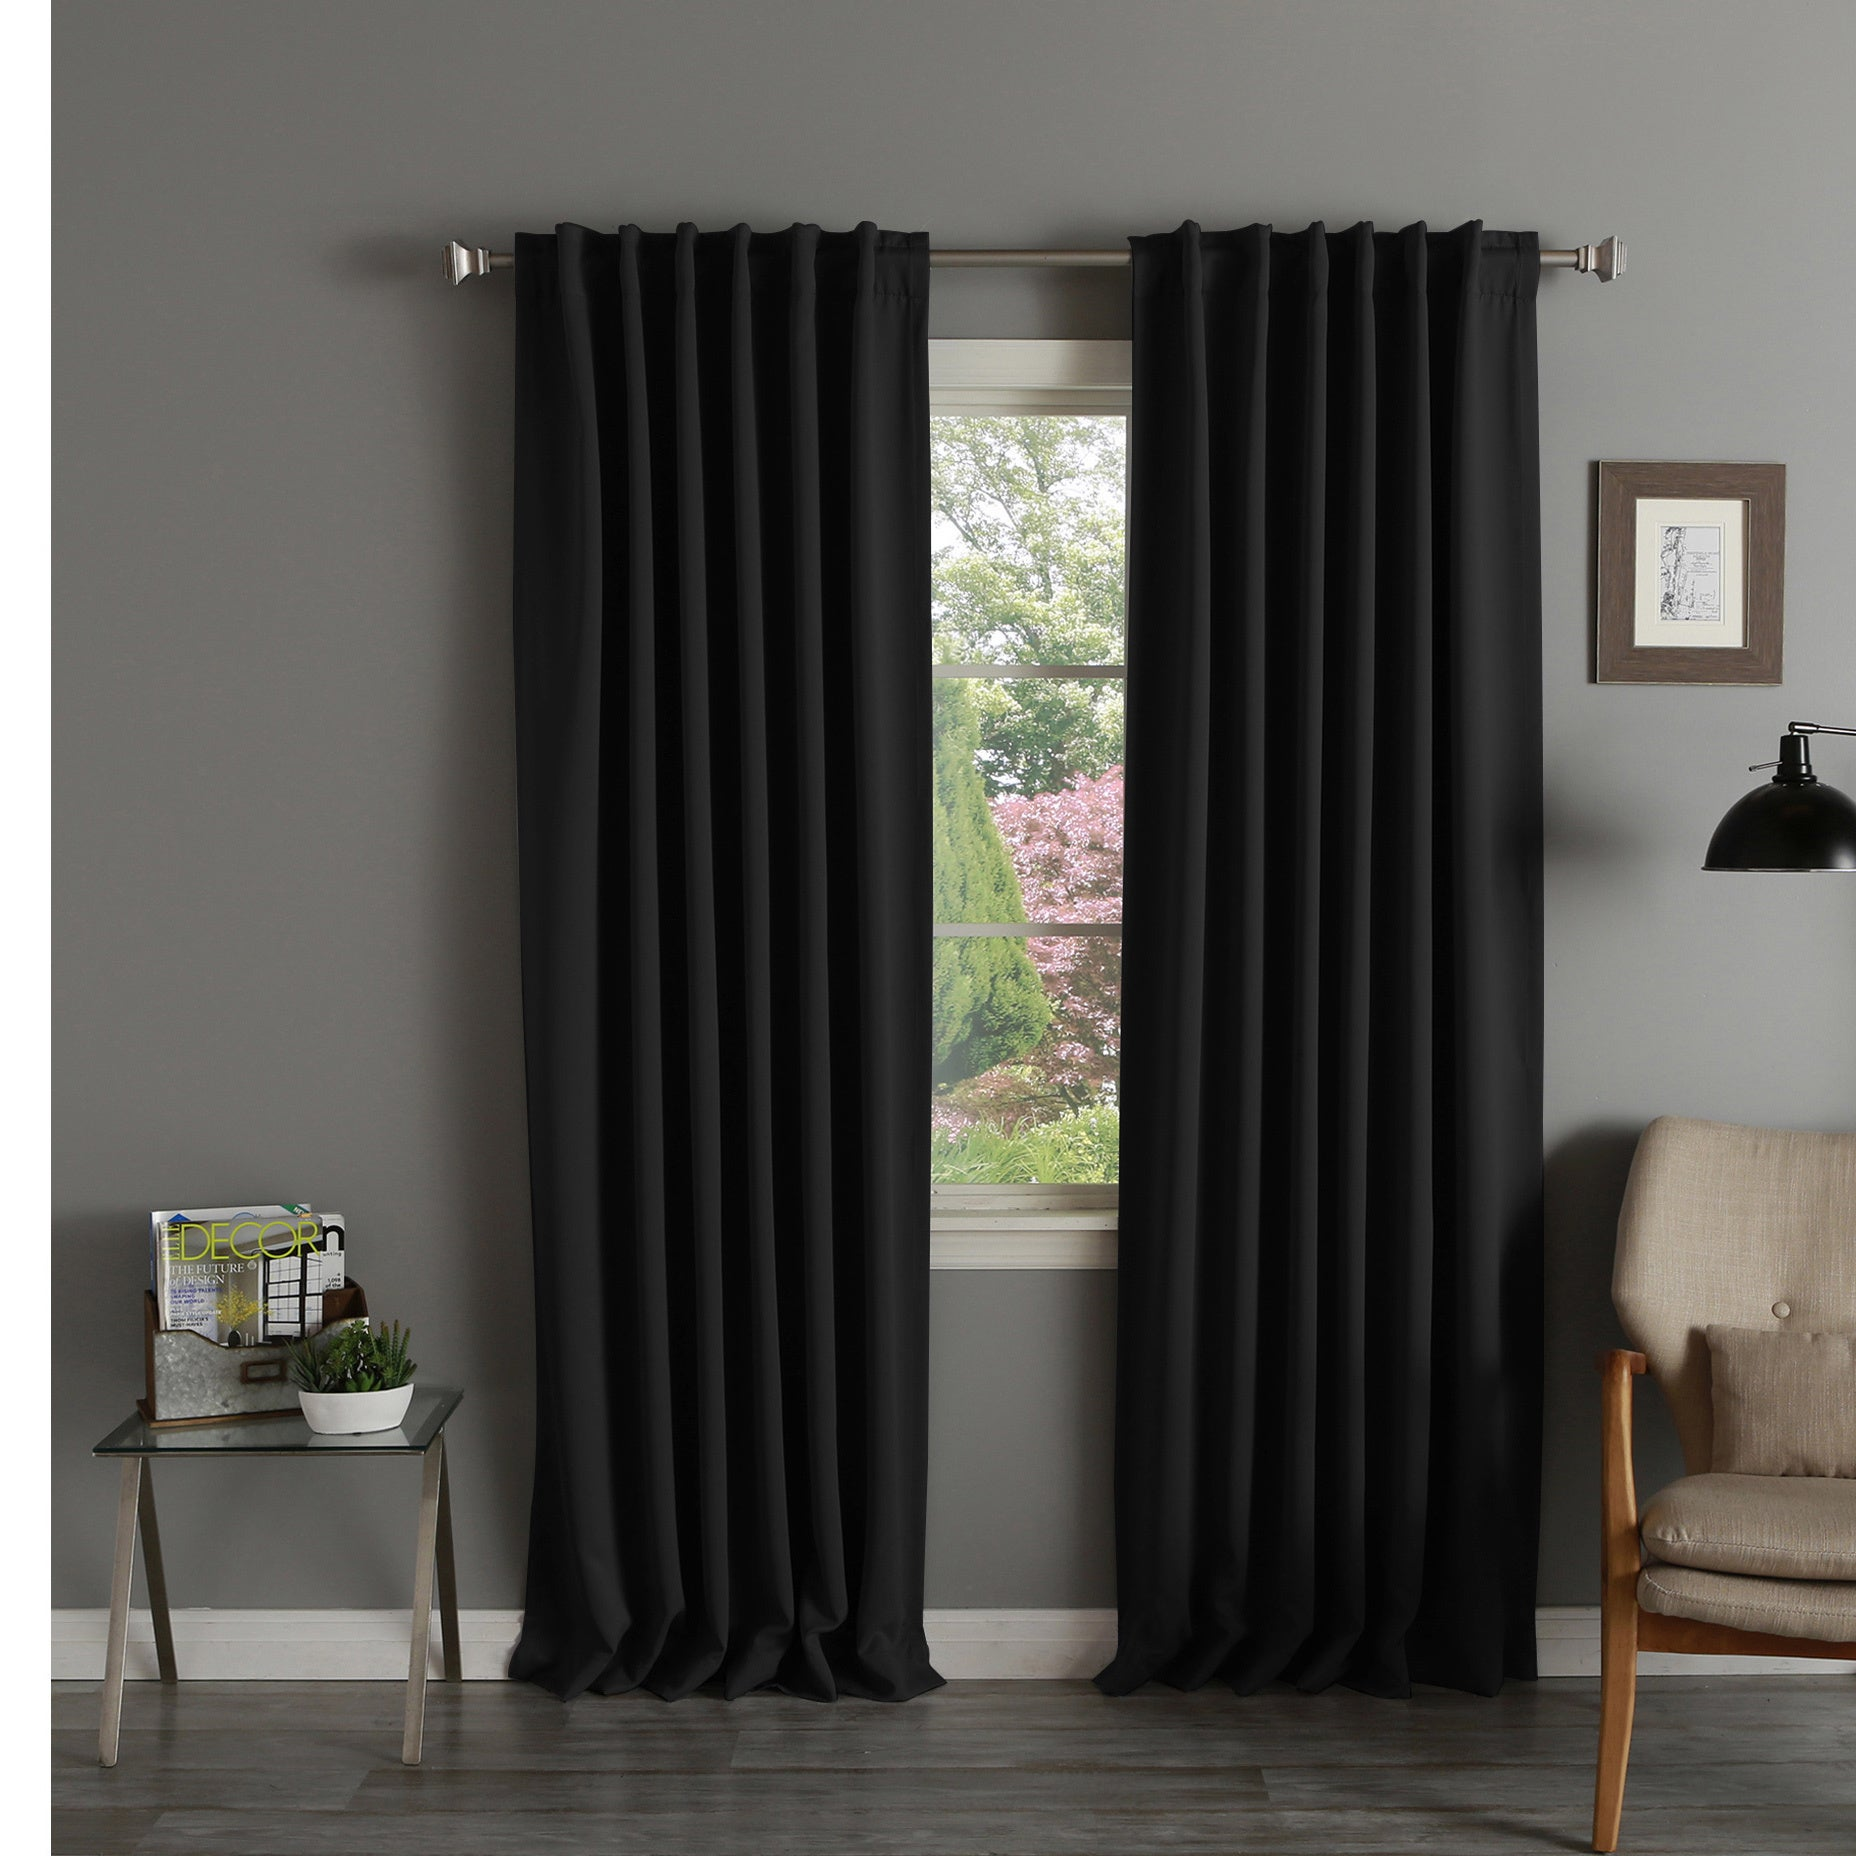 8af3ad63101 Shop Aurora Home Thermal Rod Pocket 96-inch Blackout Curtain Panel Pair -  52 x 96 - On Sale - Free Shipping Today - Overstock - 3822089